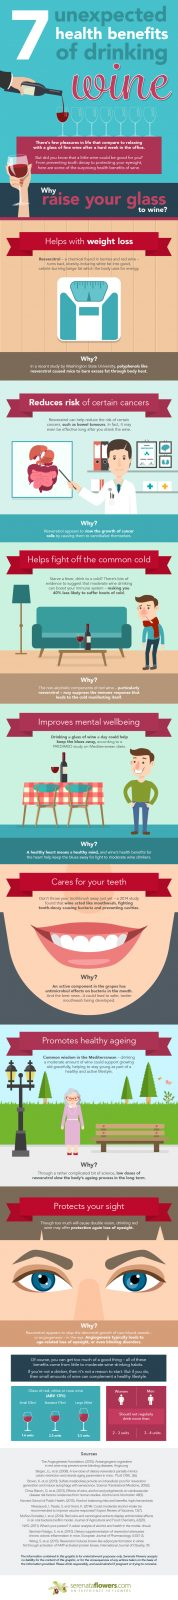 7-unexpected-health-benefits-of-drinking-wine-v3